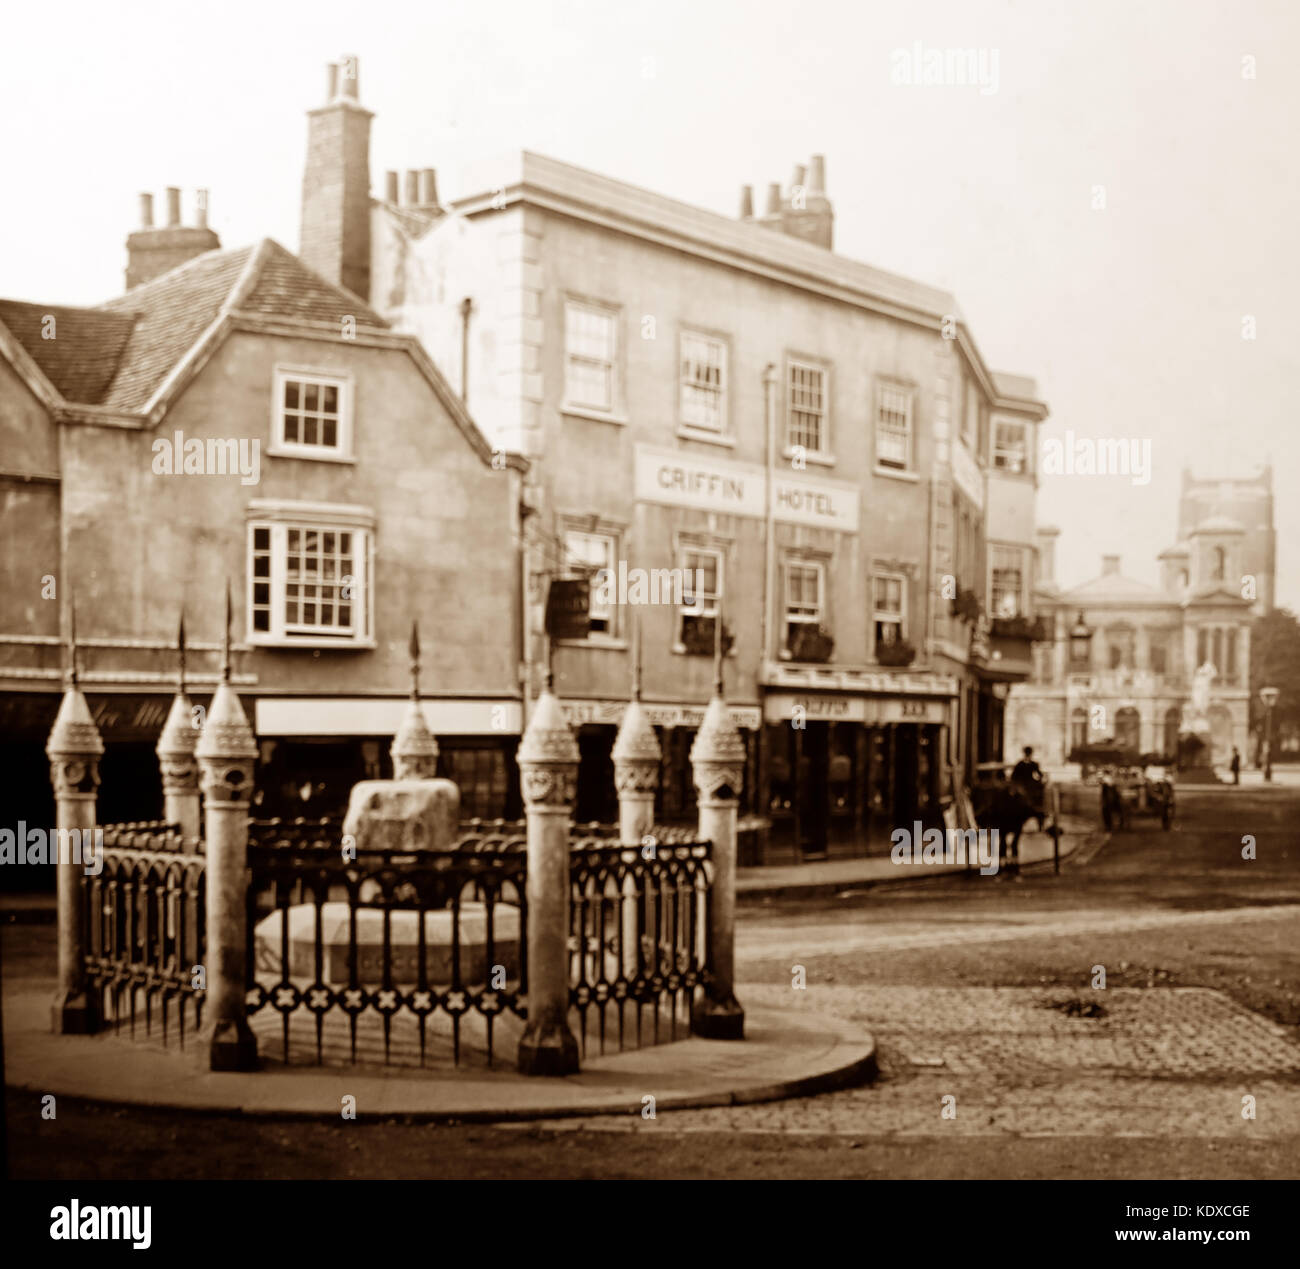 Griffin Hotel, Kingston upon Thames, early 1900s - Stock Image